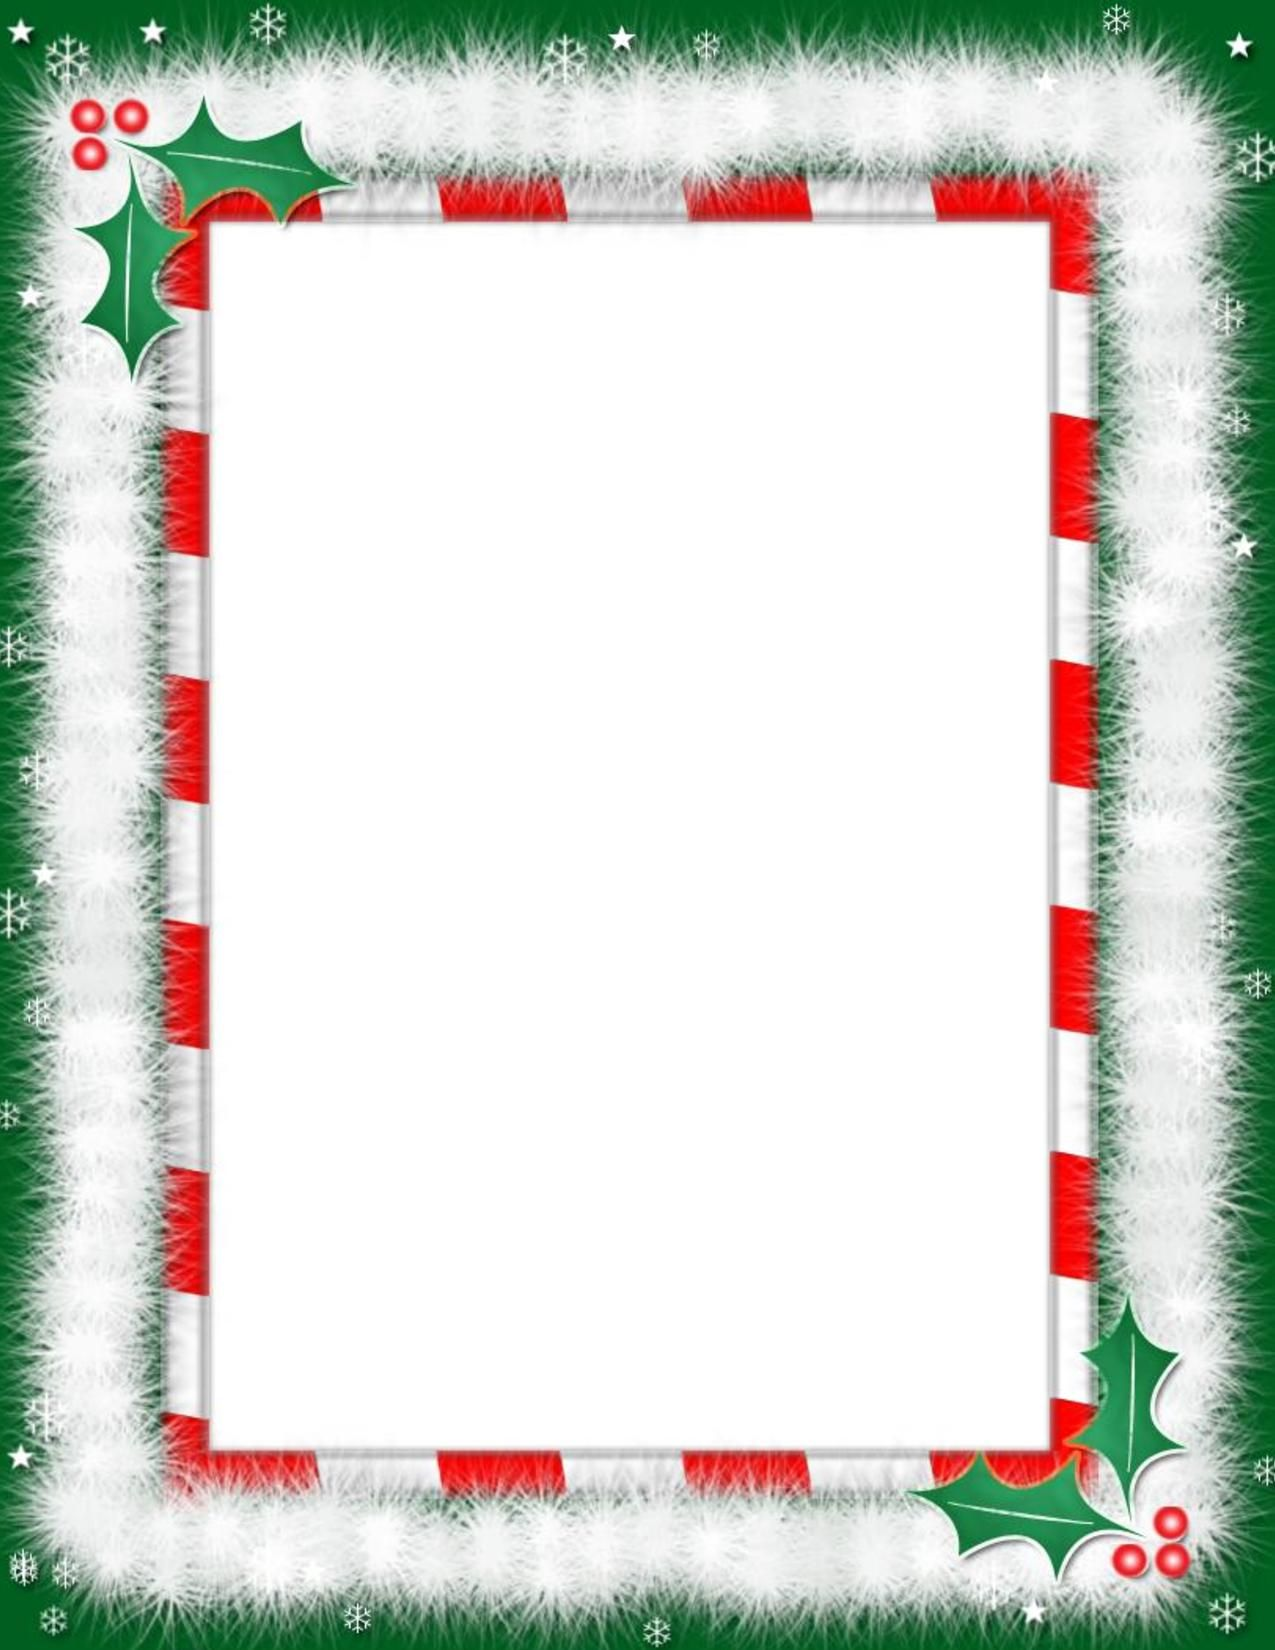 Nice Heart Word Borders Templates Free | ... Borders For Word Documents  Christmas Borders To  Free Microsoft Word Border Templates